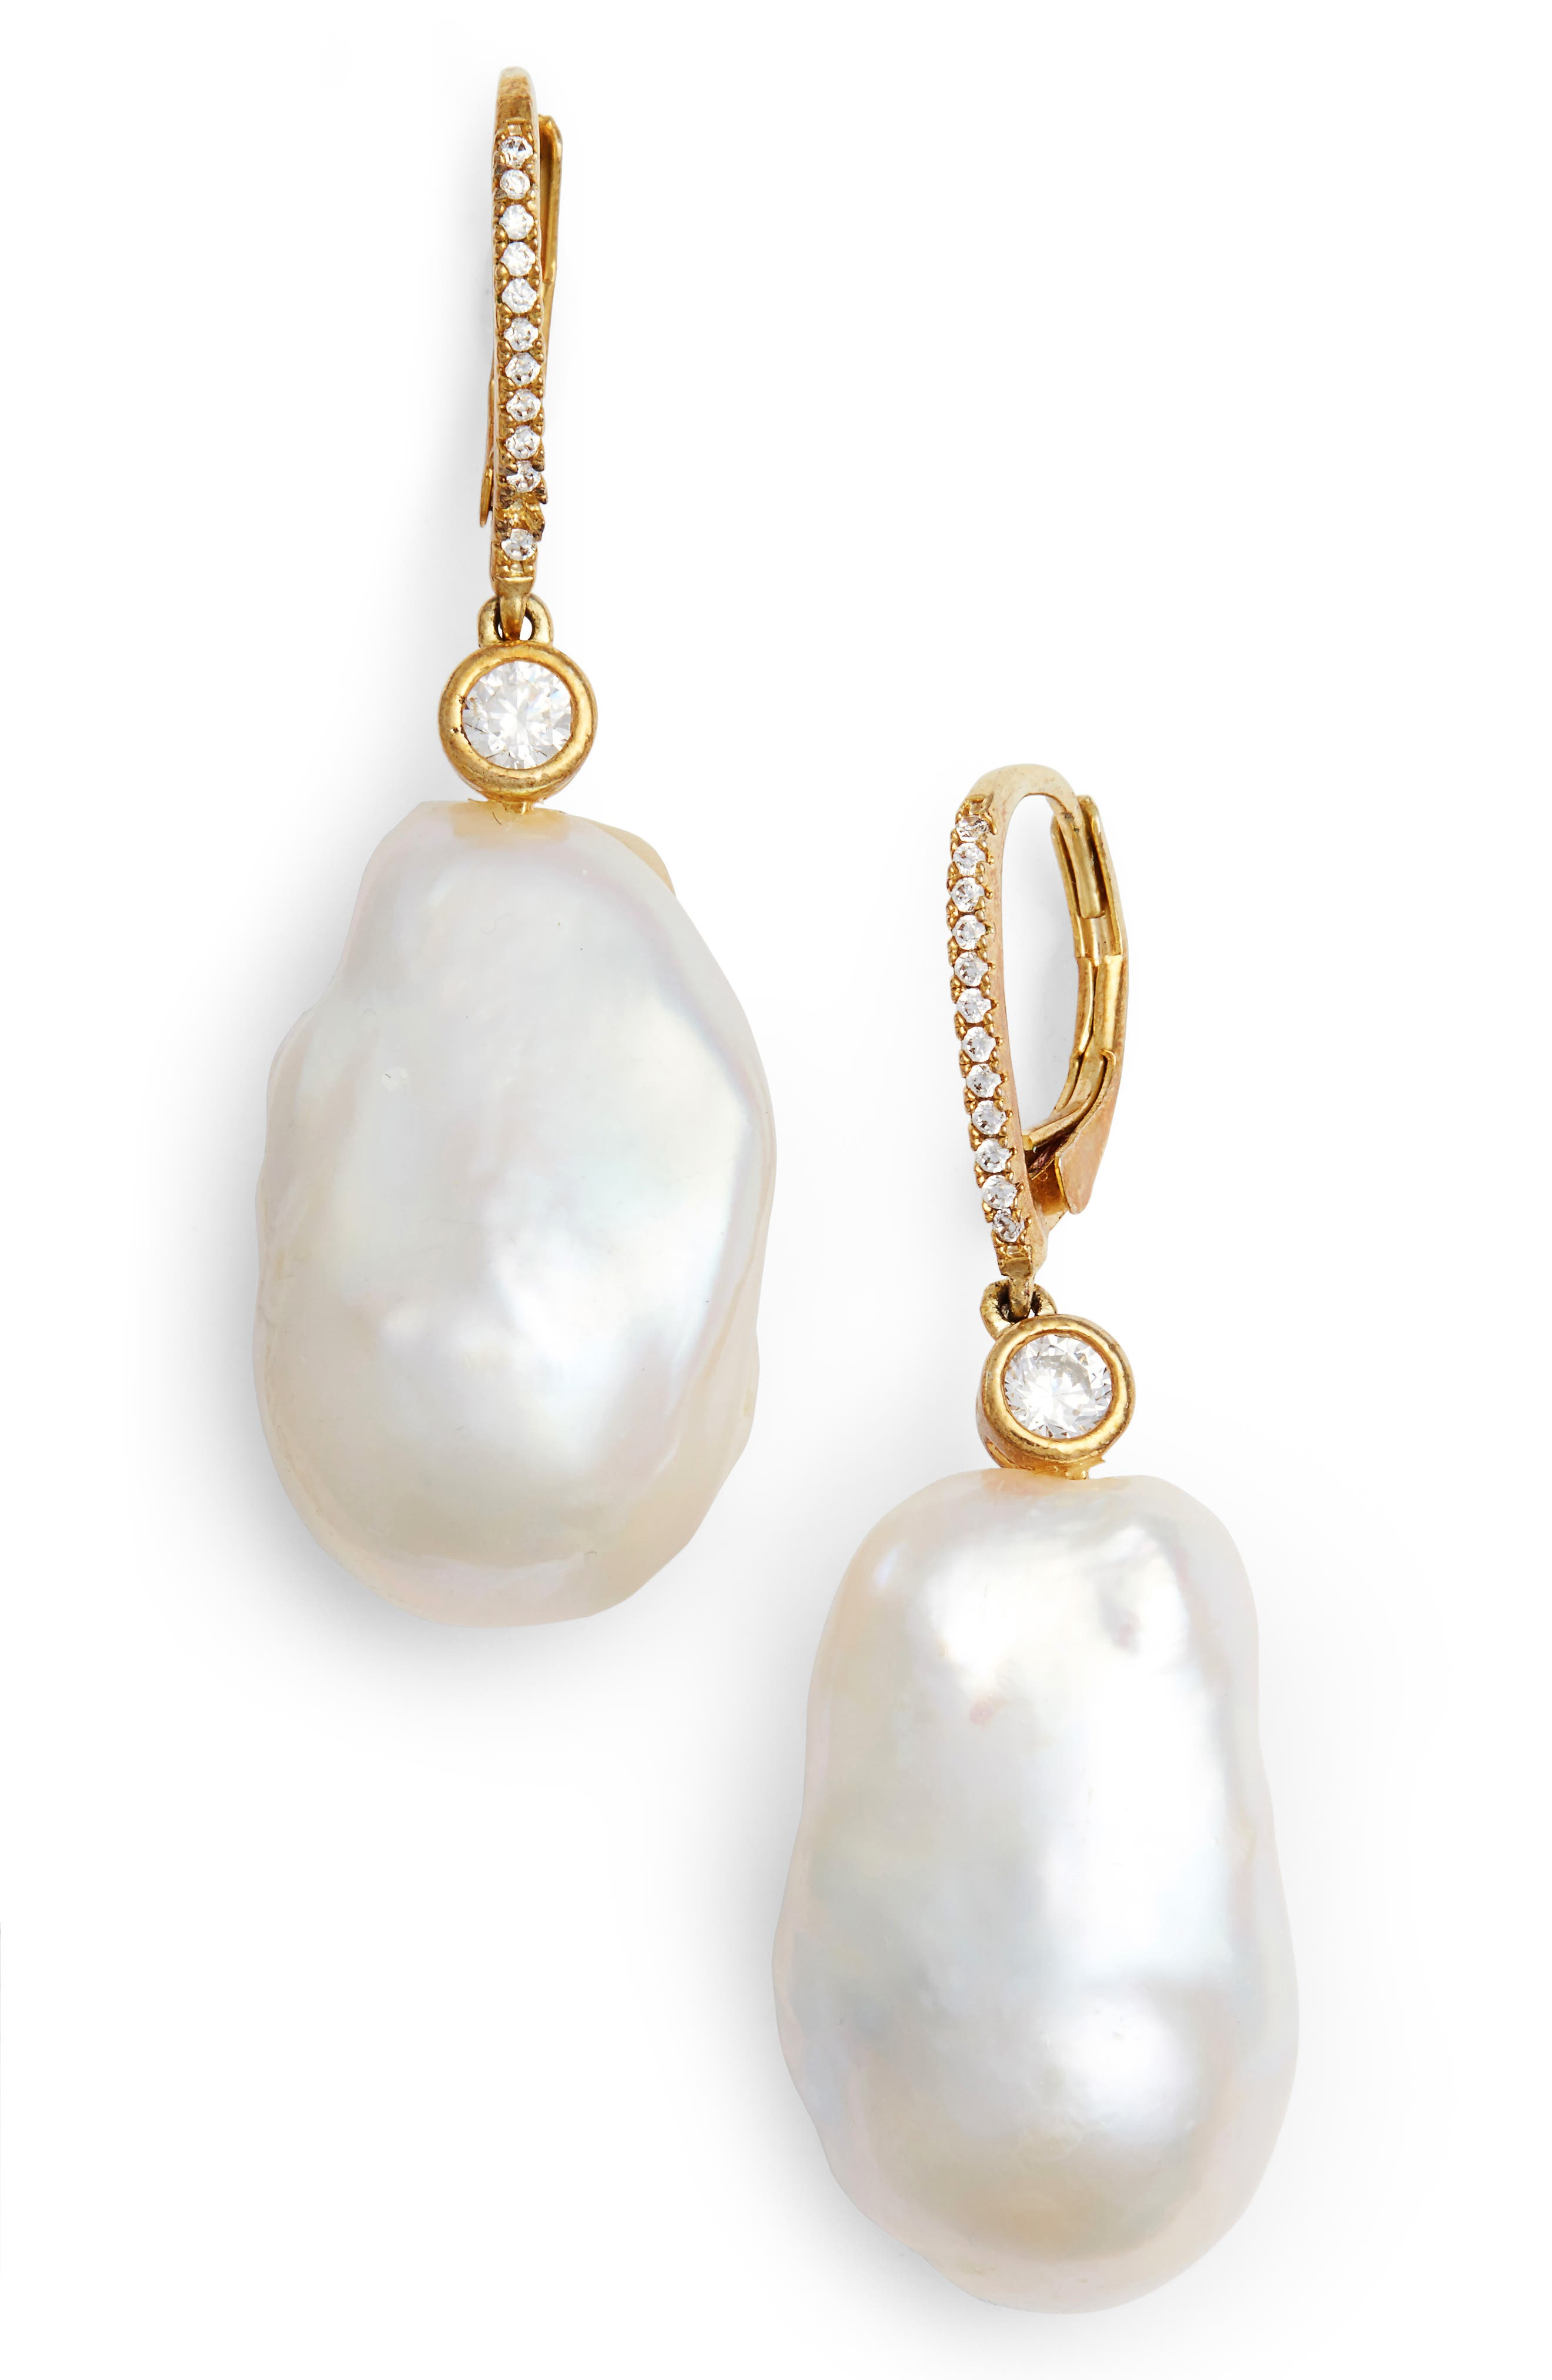 Baroque Pearl Earrings,                             Main thumbnail 1, color,                             Gold/ Baroque Pearl/ White Cz